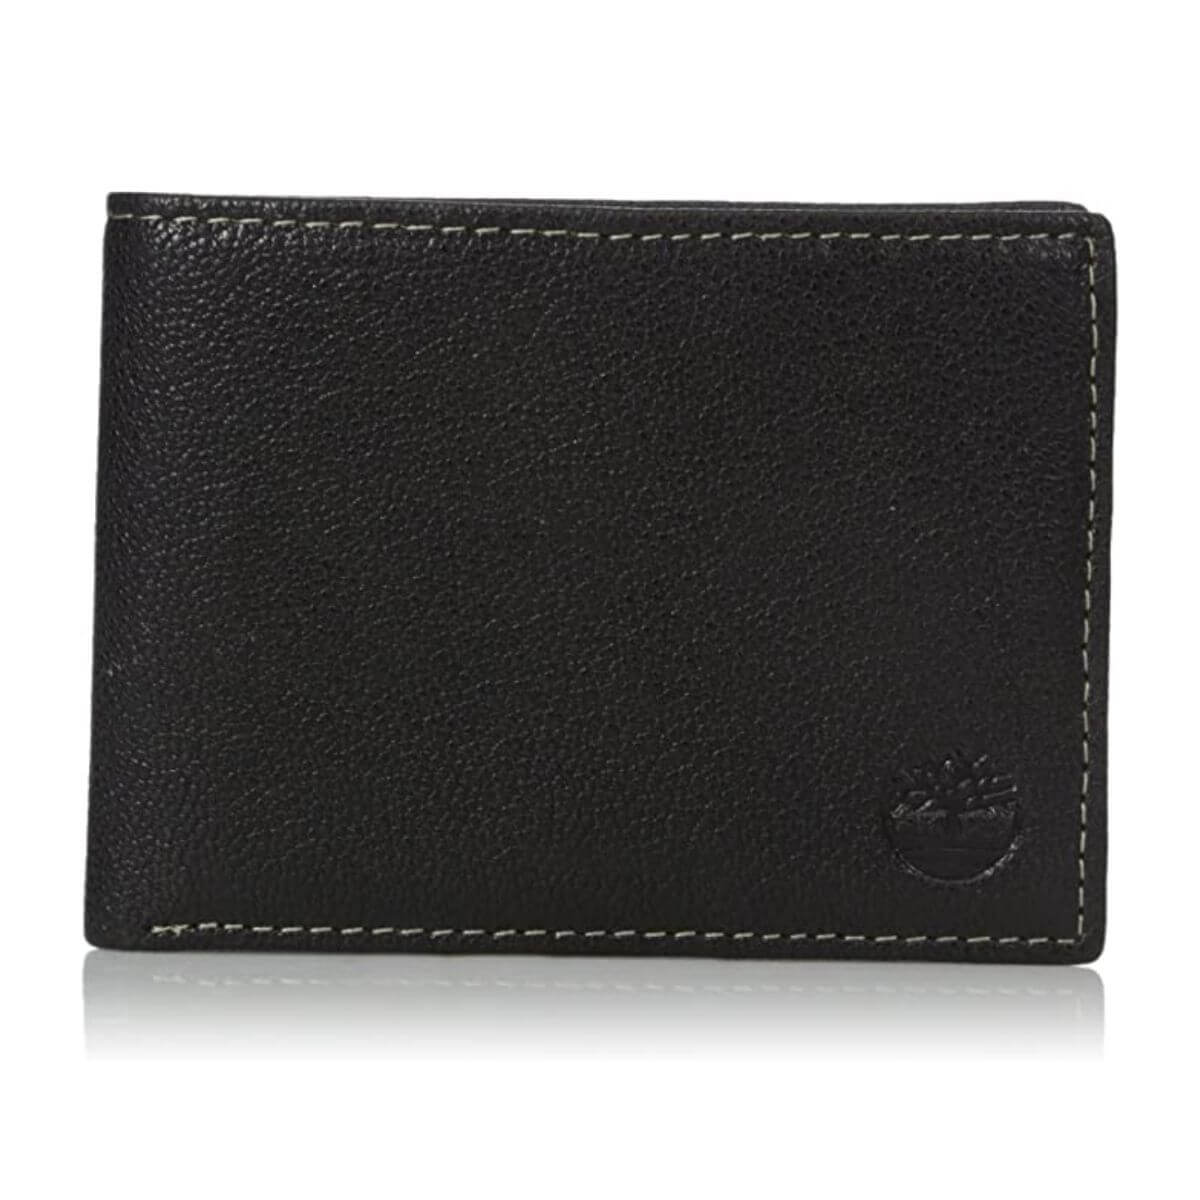 Black leather wallet with white seams.